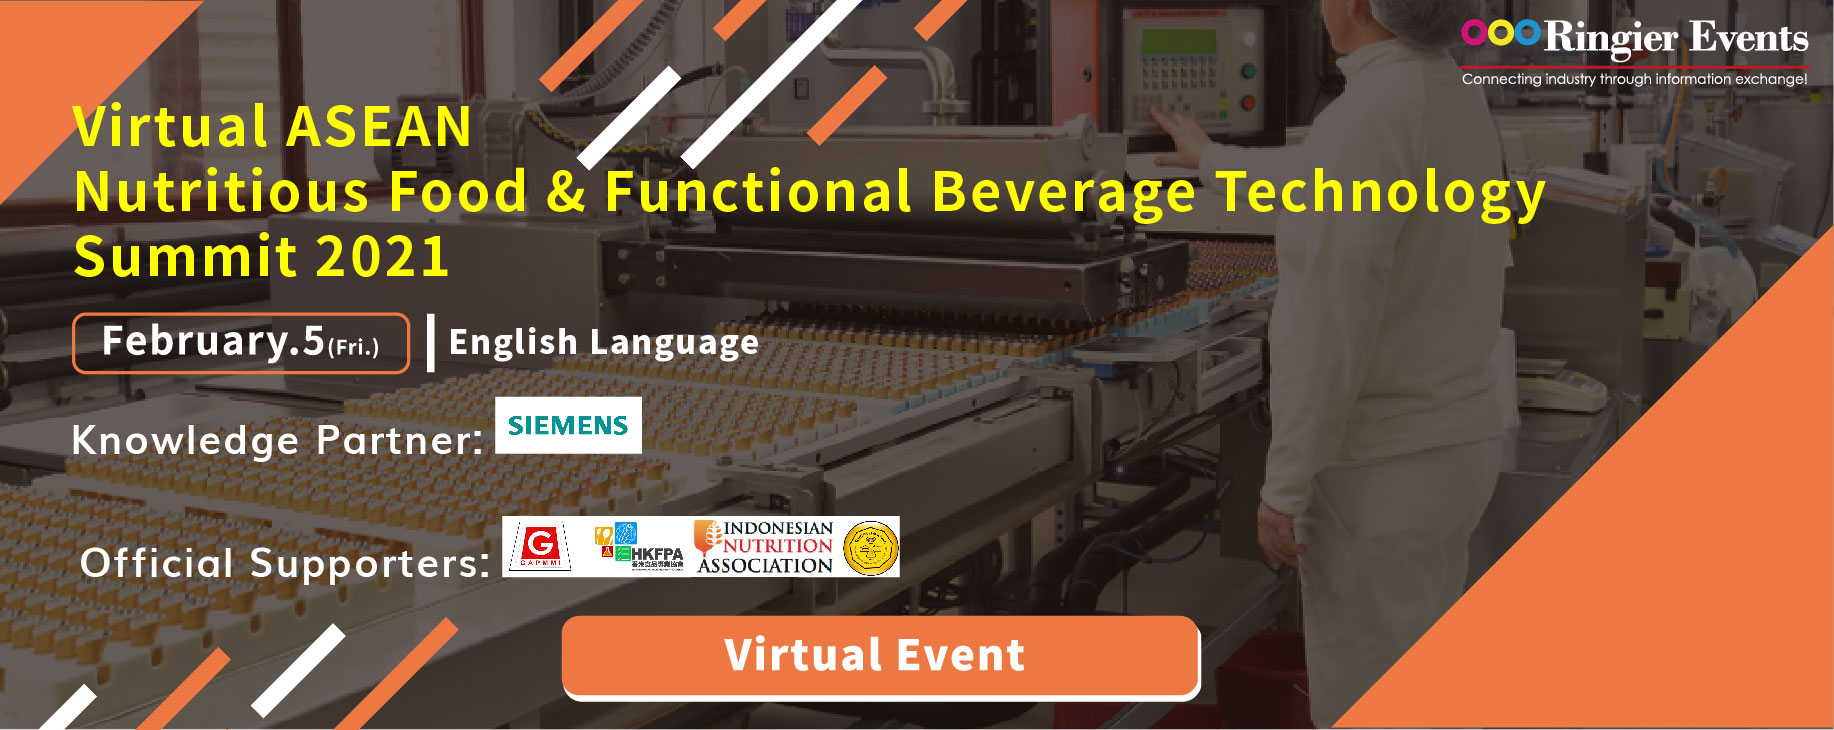 Virtual ASEAN Nutritious Food & Functional Beverage Technology Summit 2021